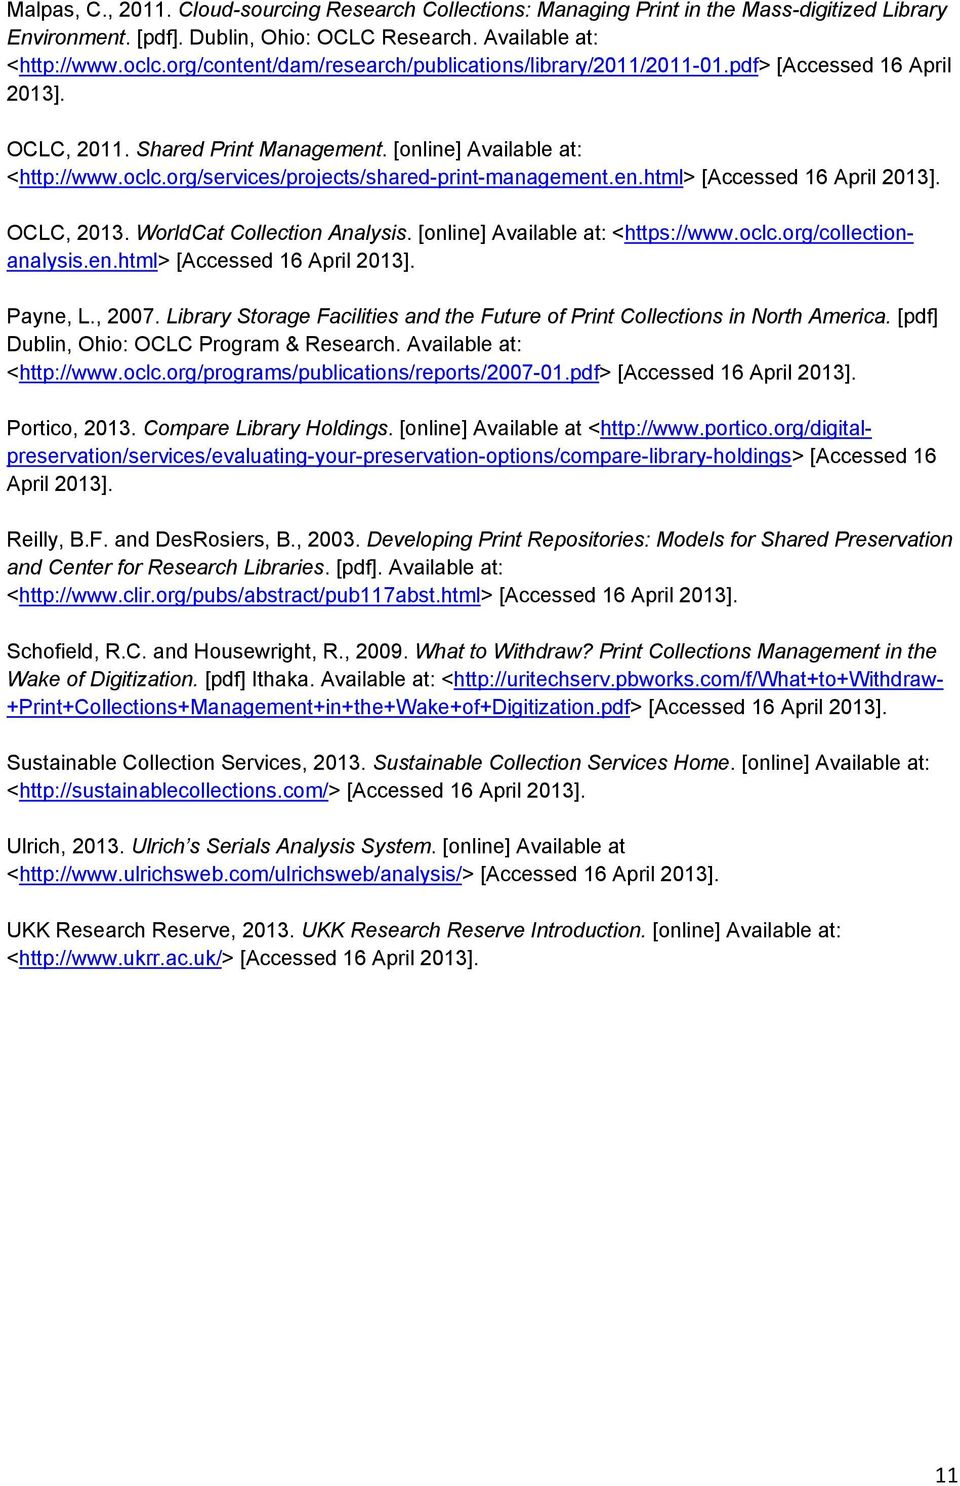 org/services/projects/shared-print-management.en.html> [Accessed 16 April 2013]. OCLC, 2013. WorldCat Collection Analysis. [online] Available at: <https://www.oclc.org/collectionanalysis.en.html> [Accessed 16 April 2013]. Payne, L.